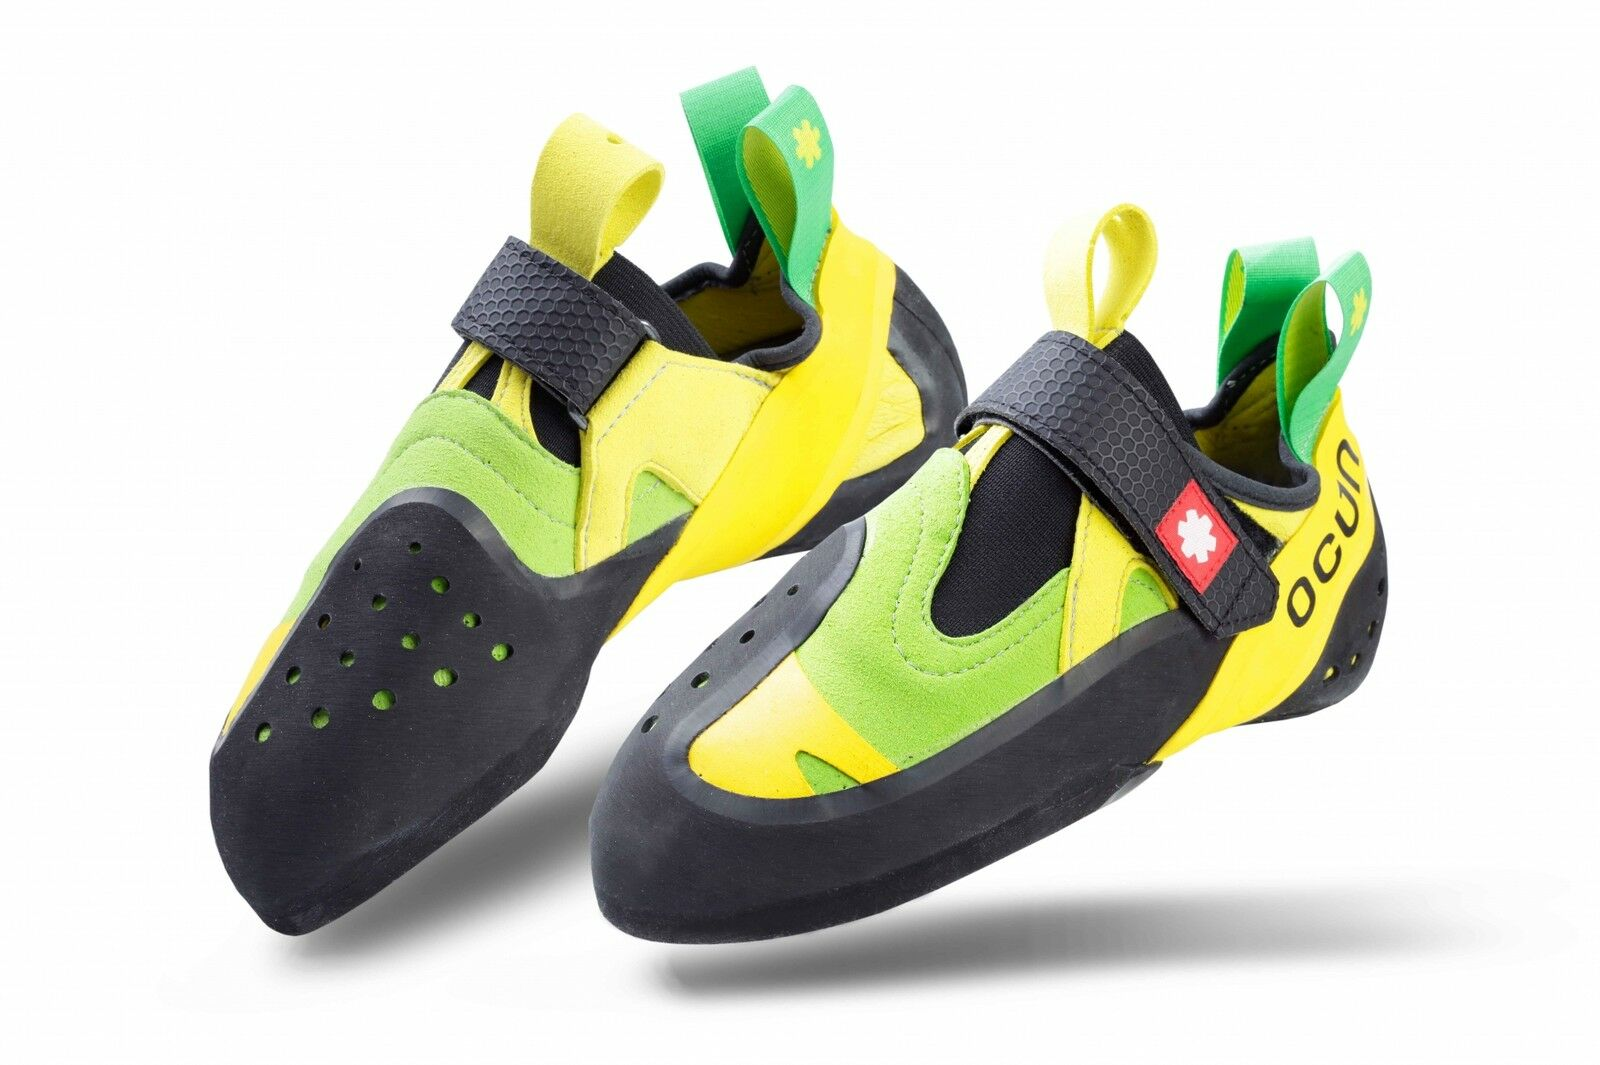 OCUN OXI S  - A bouldering shoe for performance and competition climbing  fashion mall